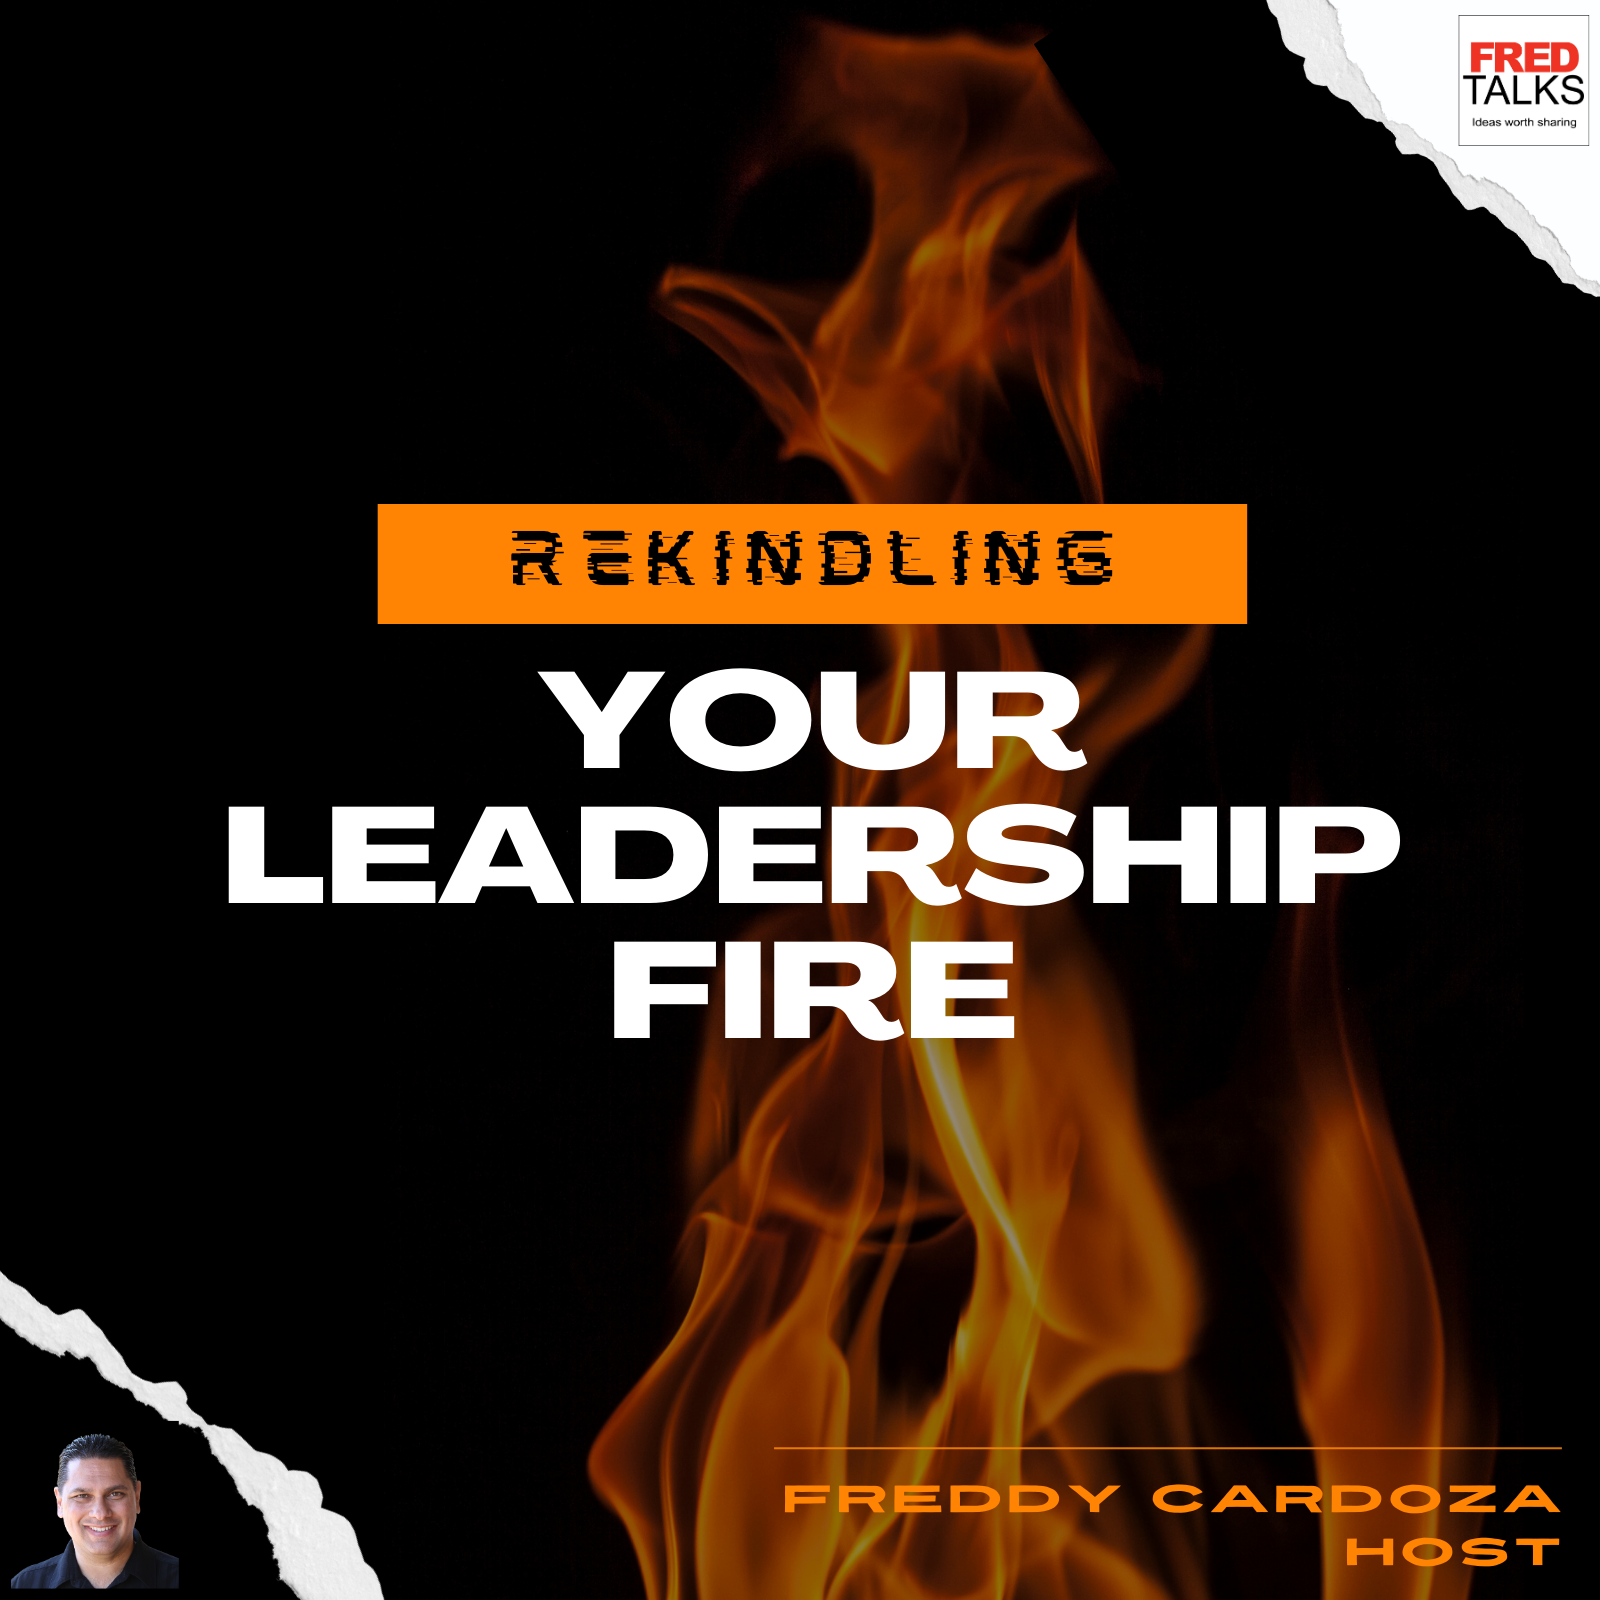 Rekindle Your Leadership Fire